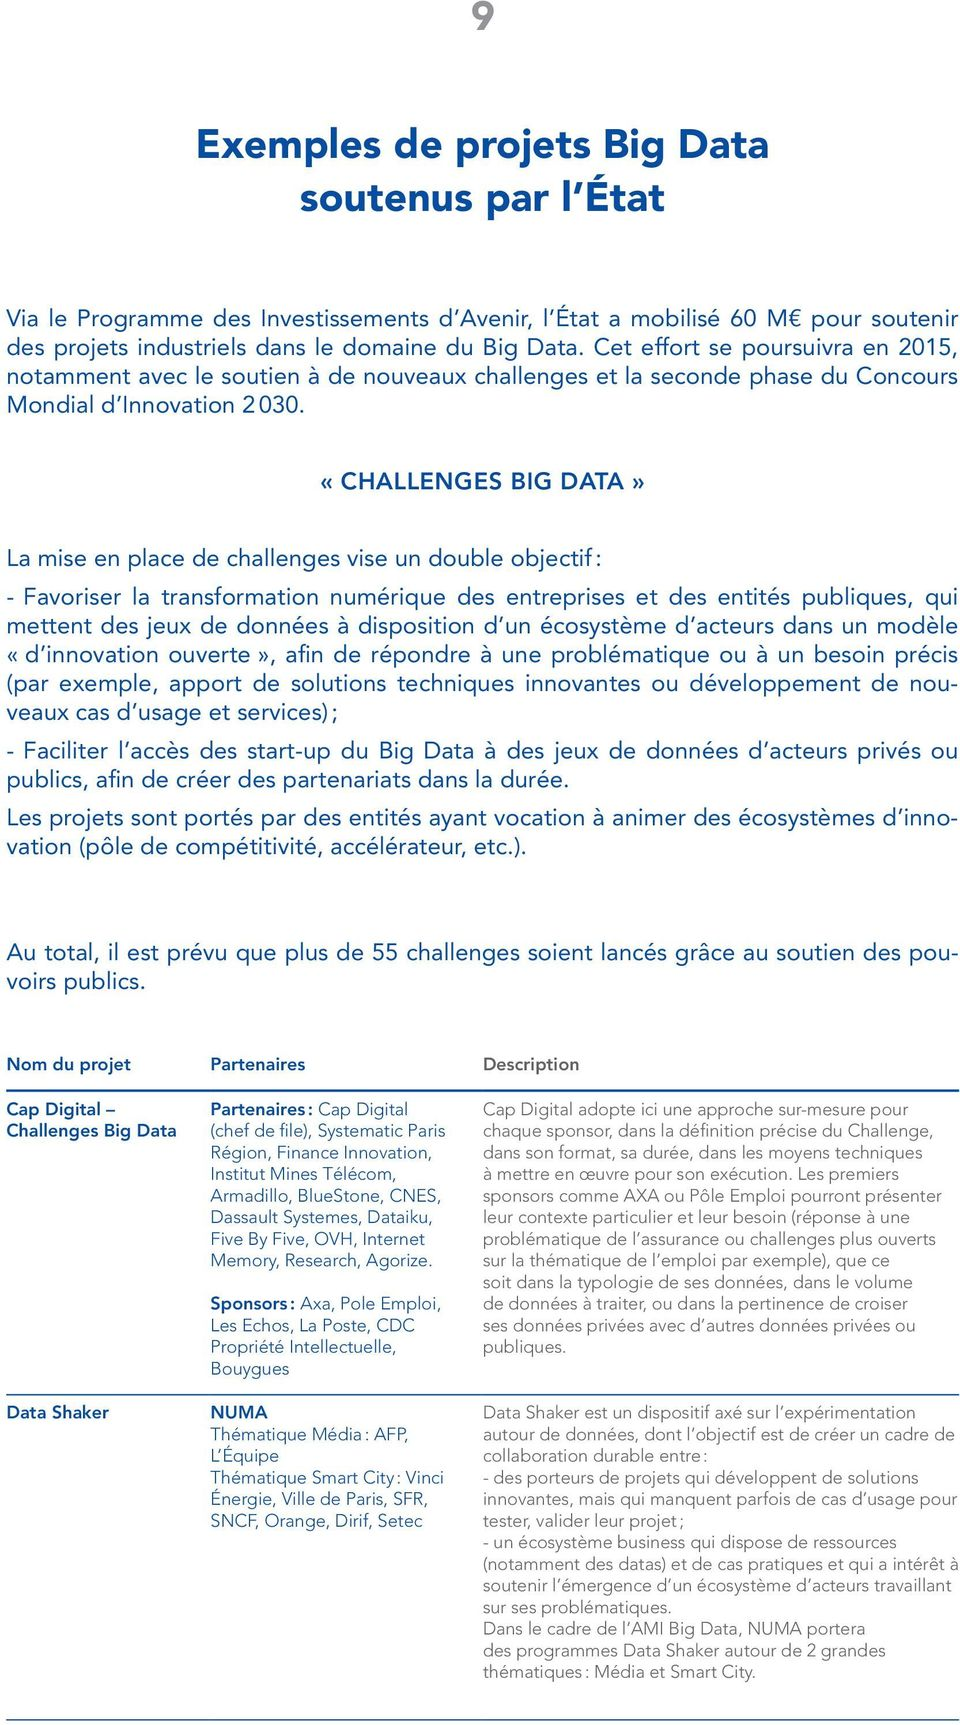 «Challenges Big Data» La mise en place de challenges vise un double objectif : - Favoriser la transformation numérique des entreprises et des entités publiques, qui mettent des jeux de données à